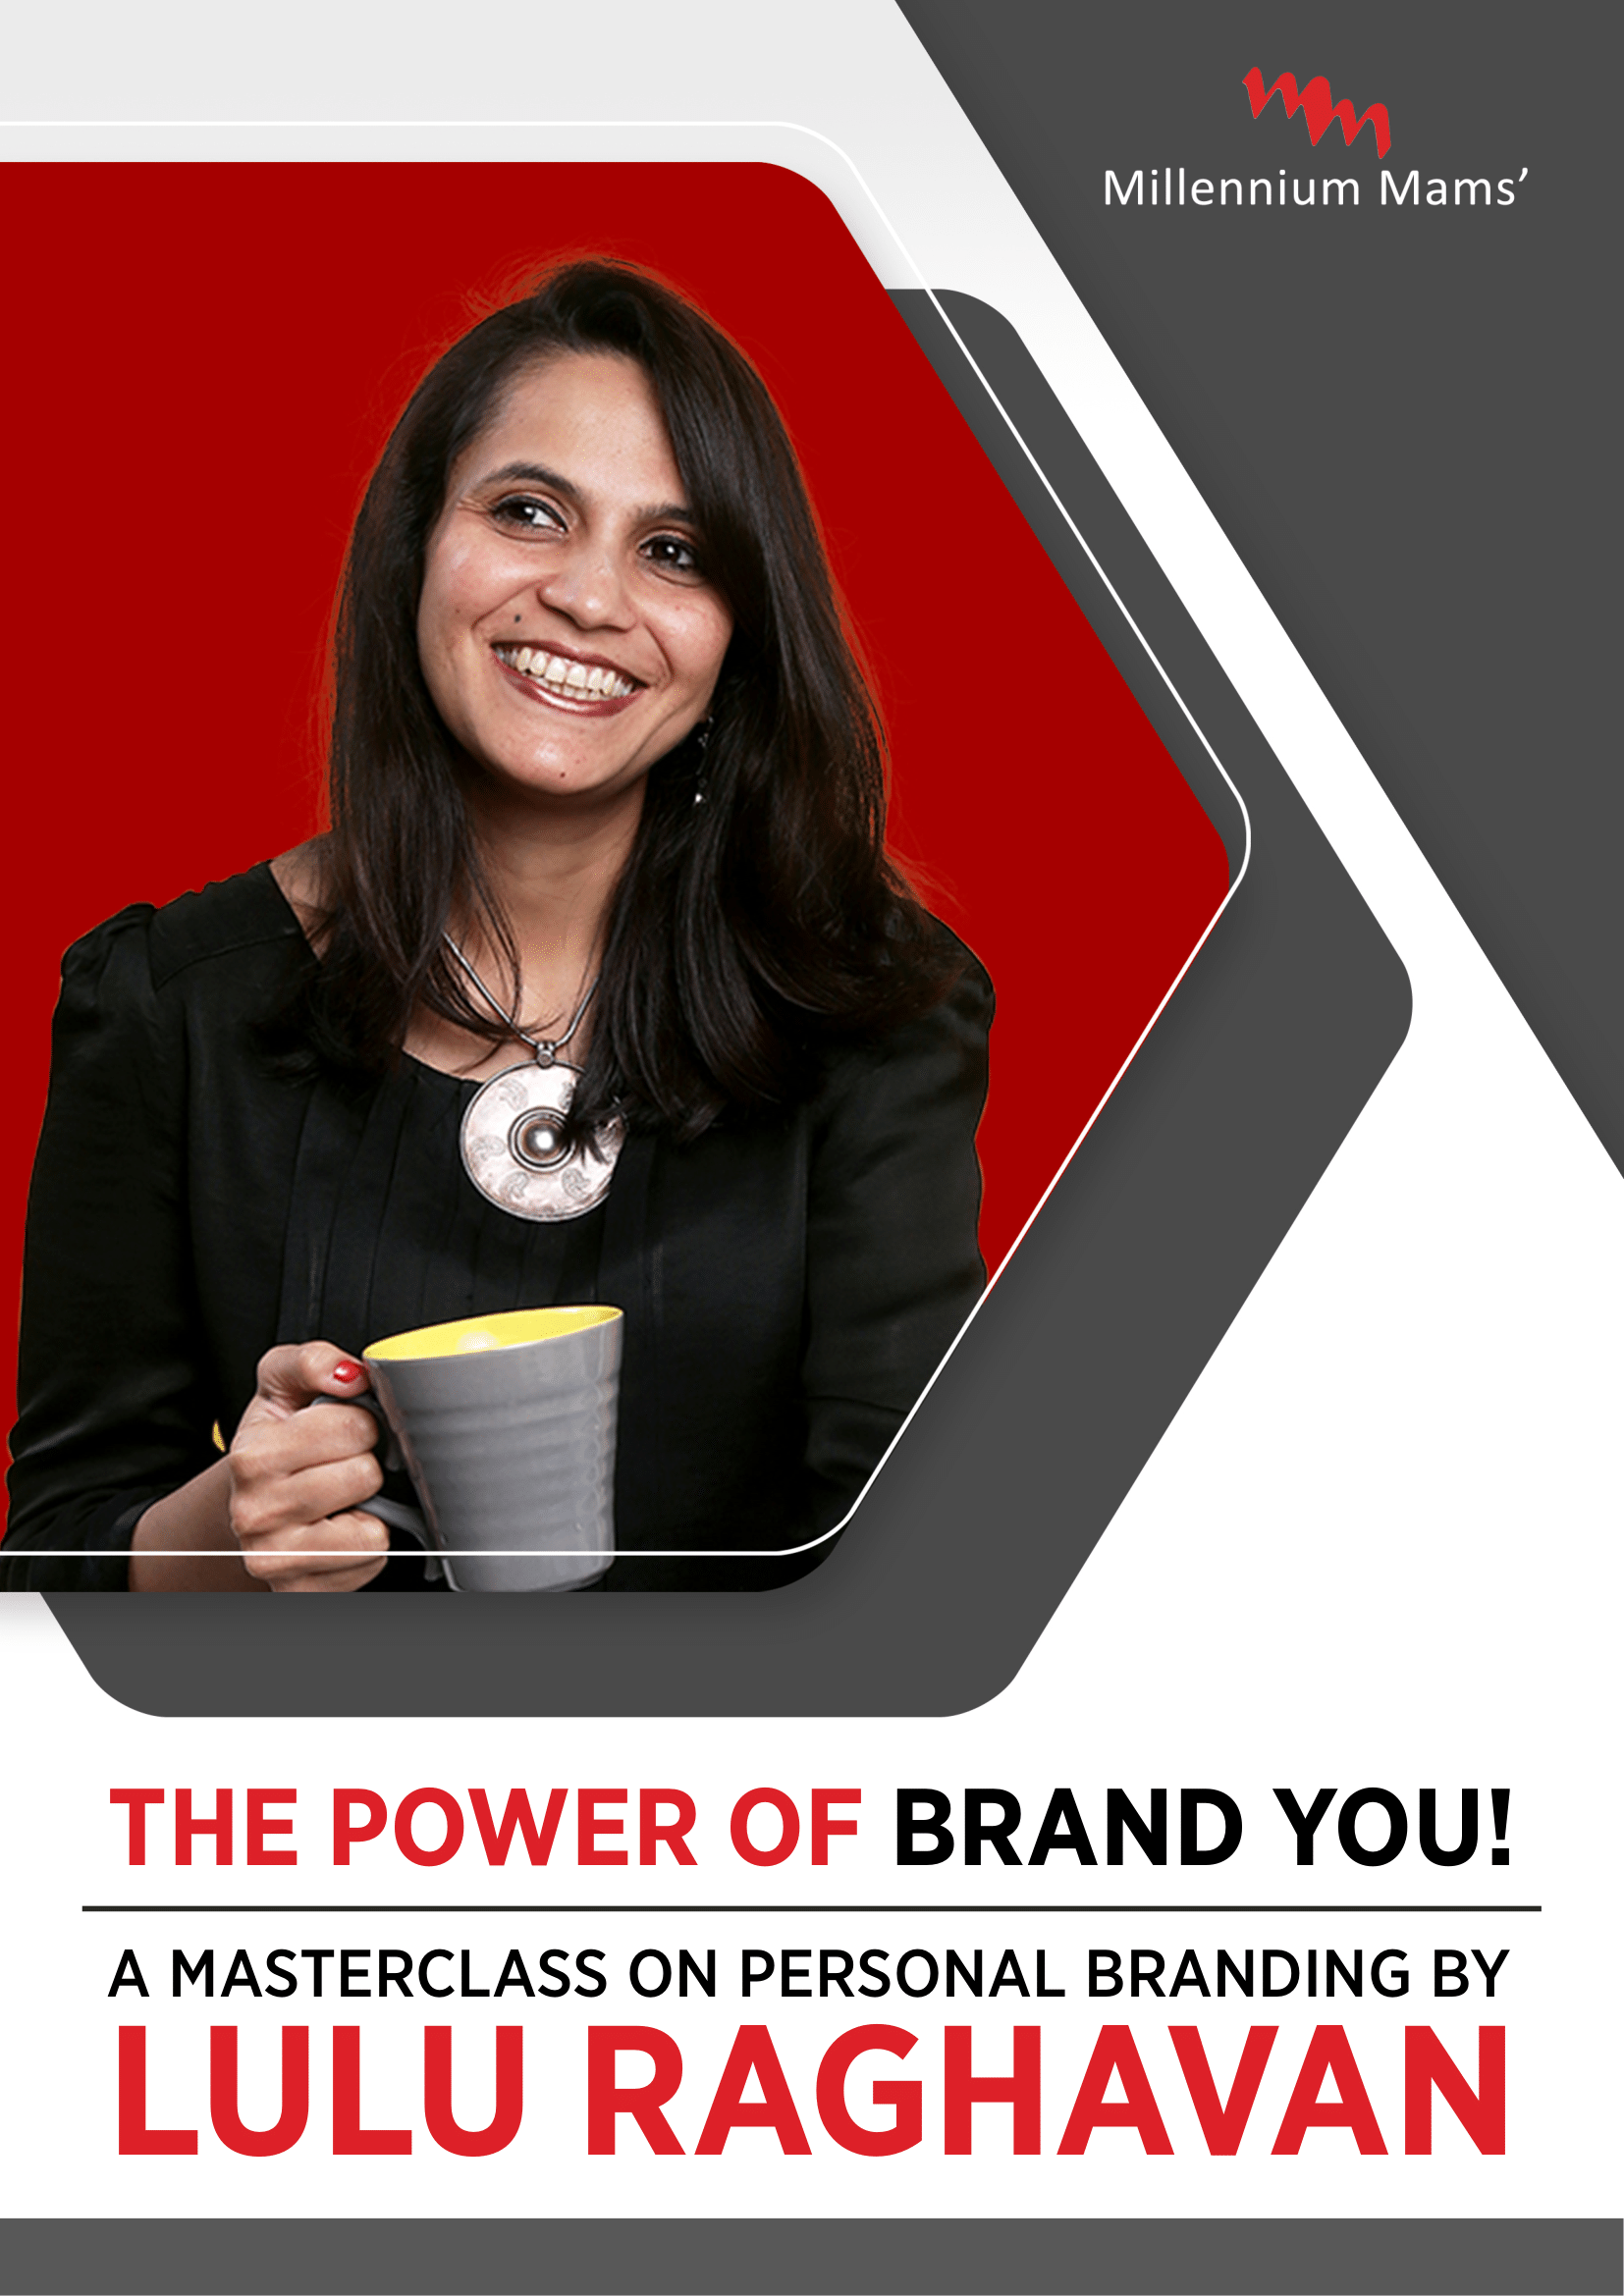 Millennium Mams :: The Power of Brand YOU!